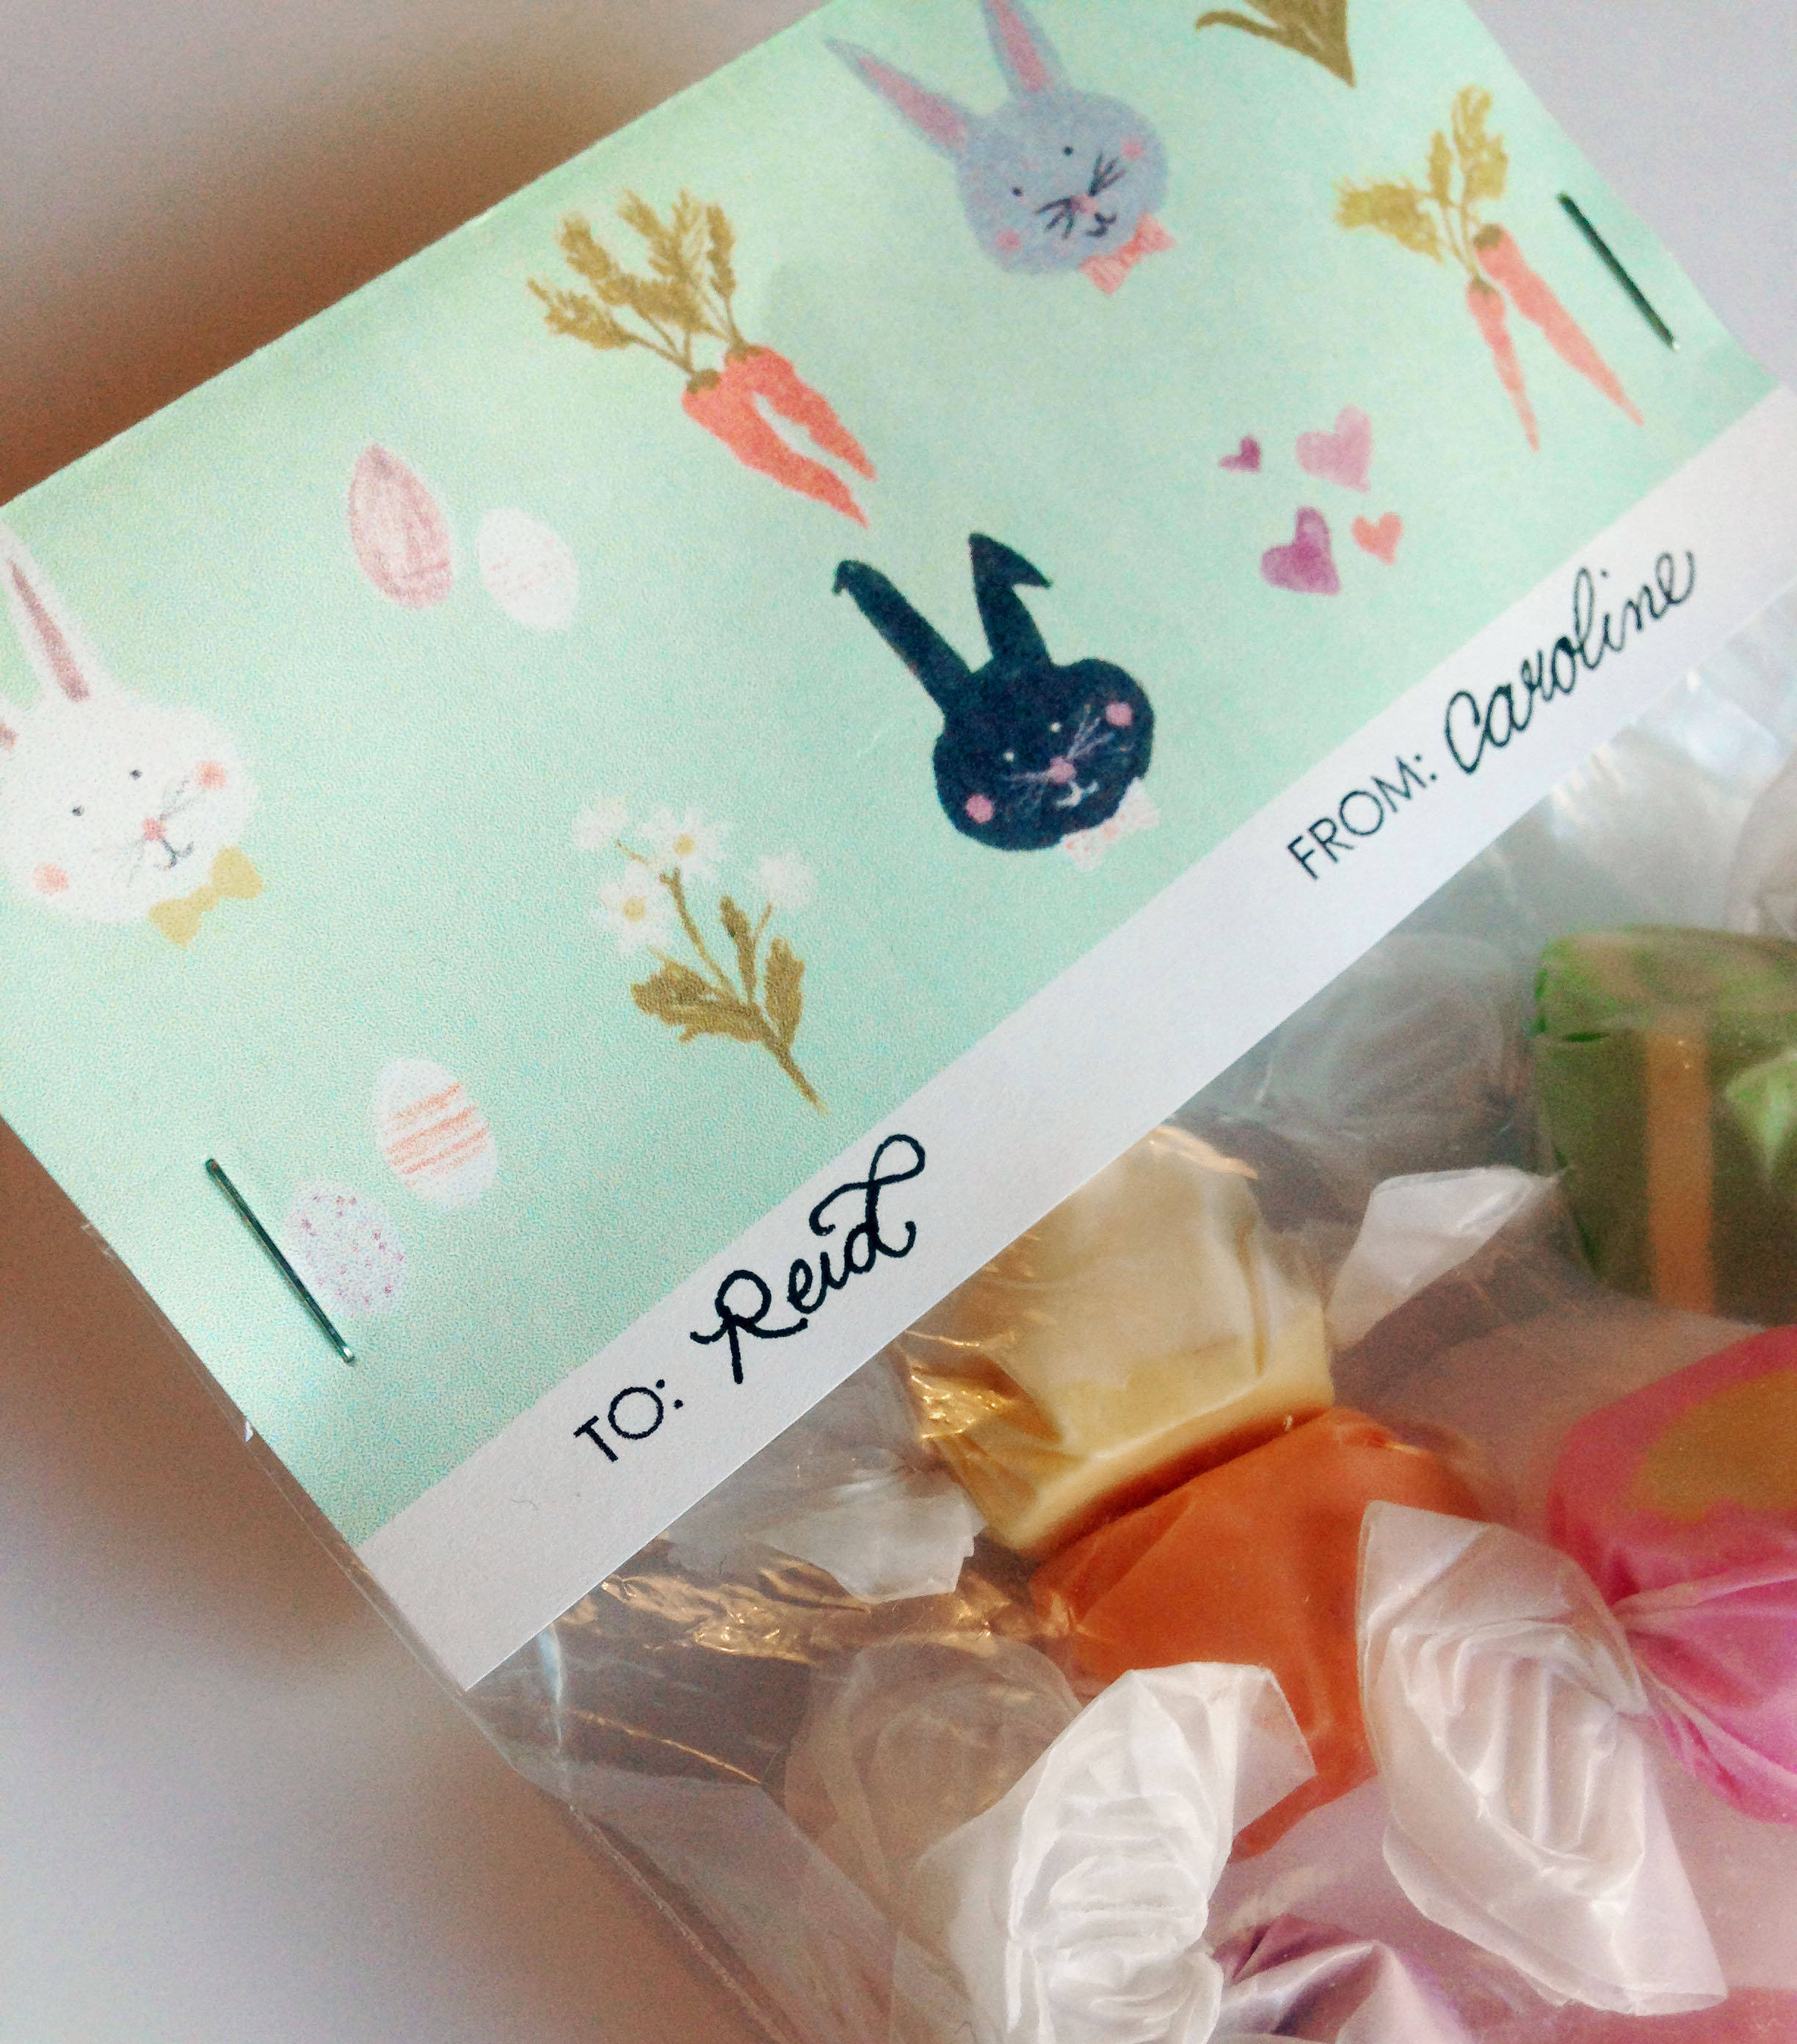 All art original work by Caroline Hutchison for Lina Lulu Paperie